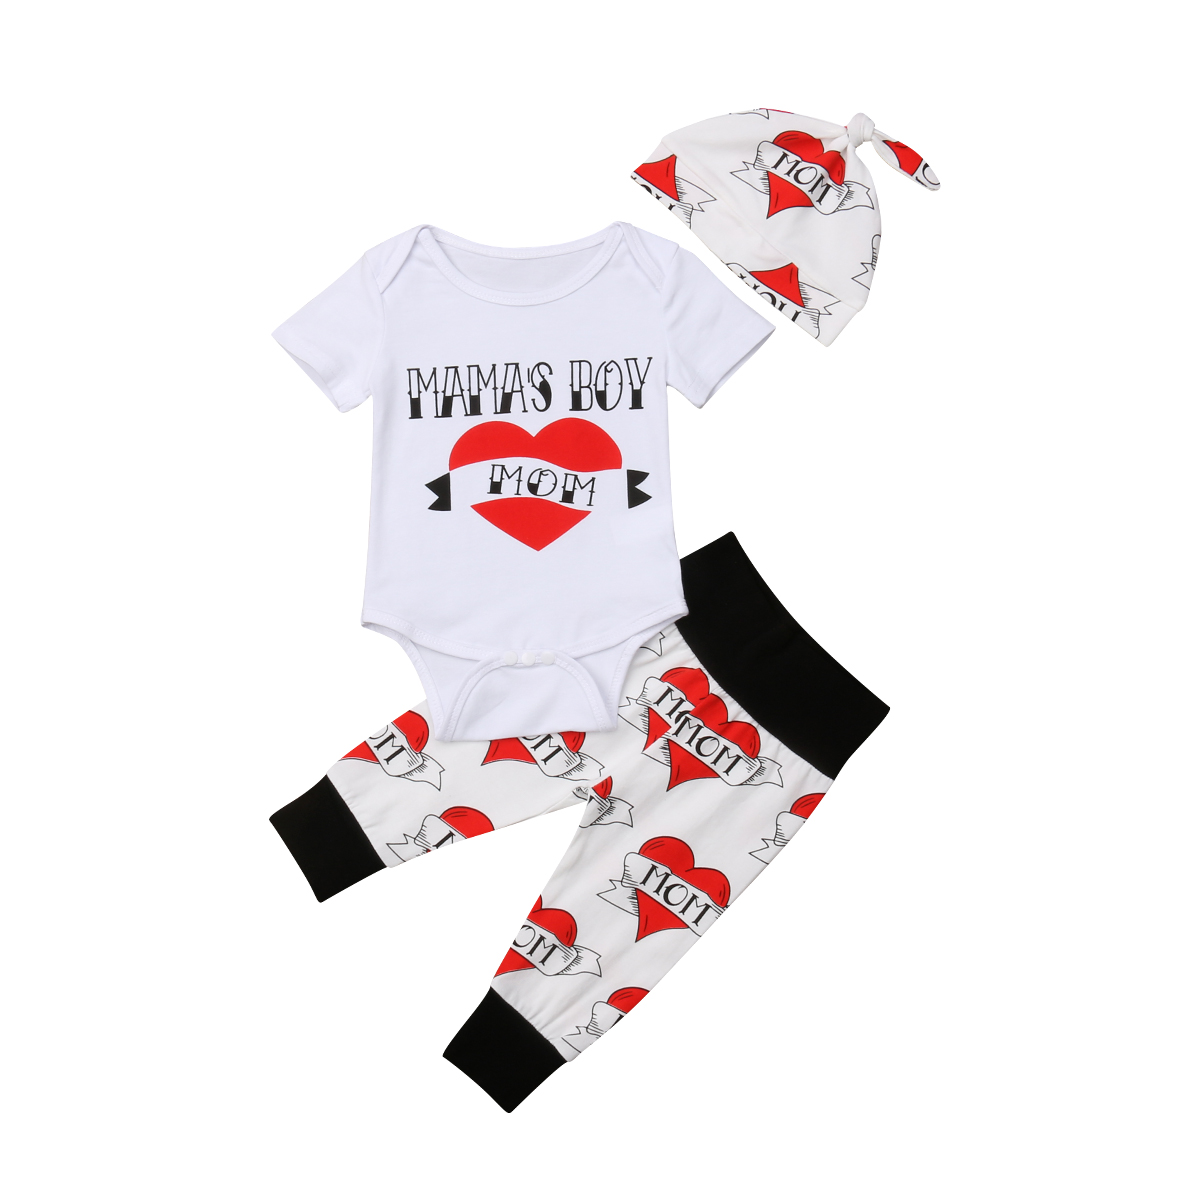 684fe8fc5562 2019 Multitrust Brand Fashion MAMA BOY Toddler Baby Boys Romper Short Sleeves  Love Heart Jumpsuit Long Pants Clothes Outfits-in Clothing Sets from Mother  ...